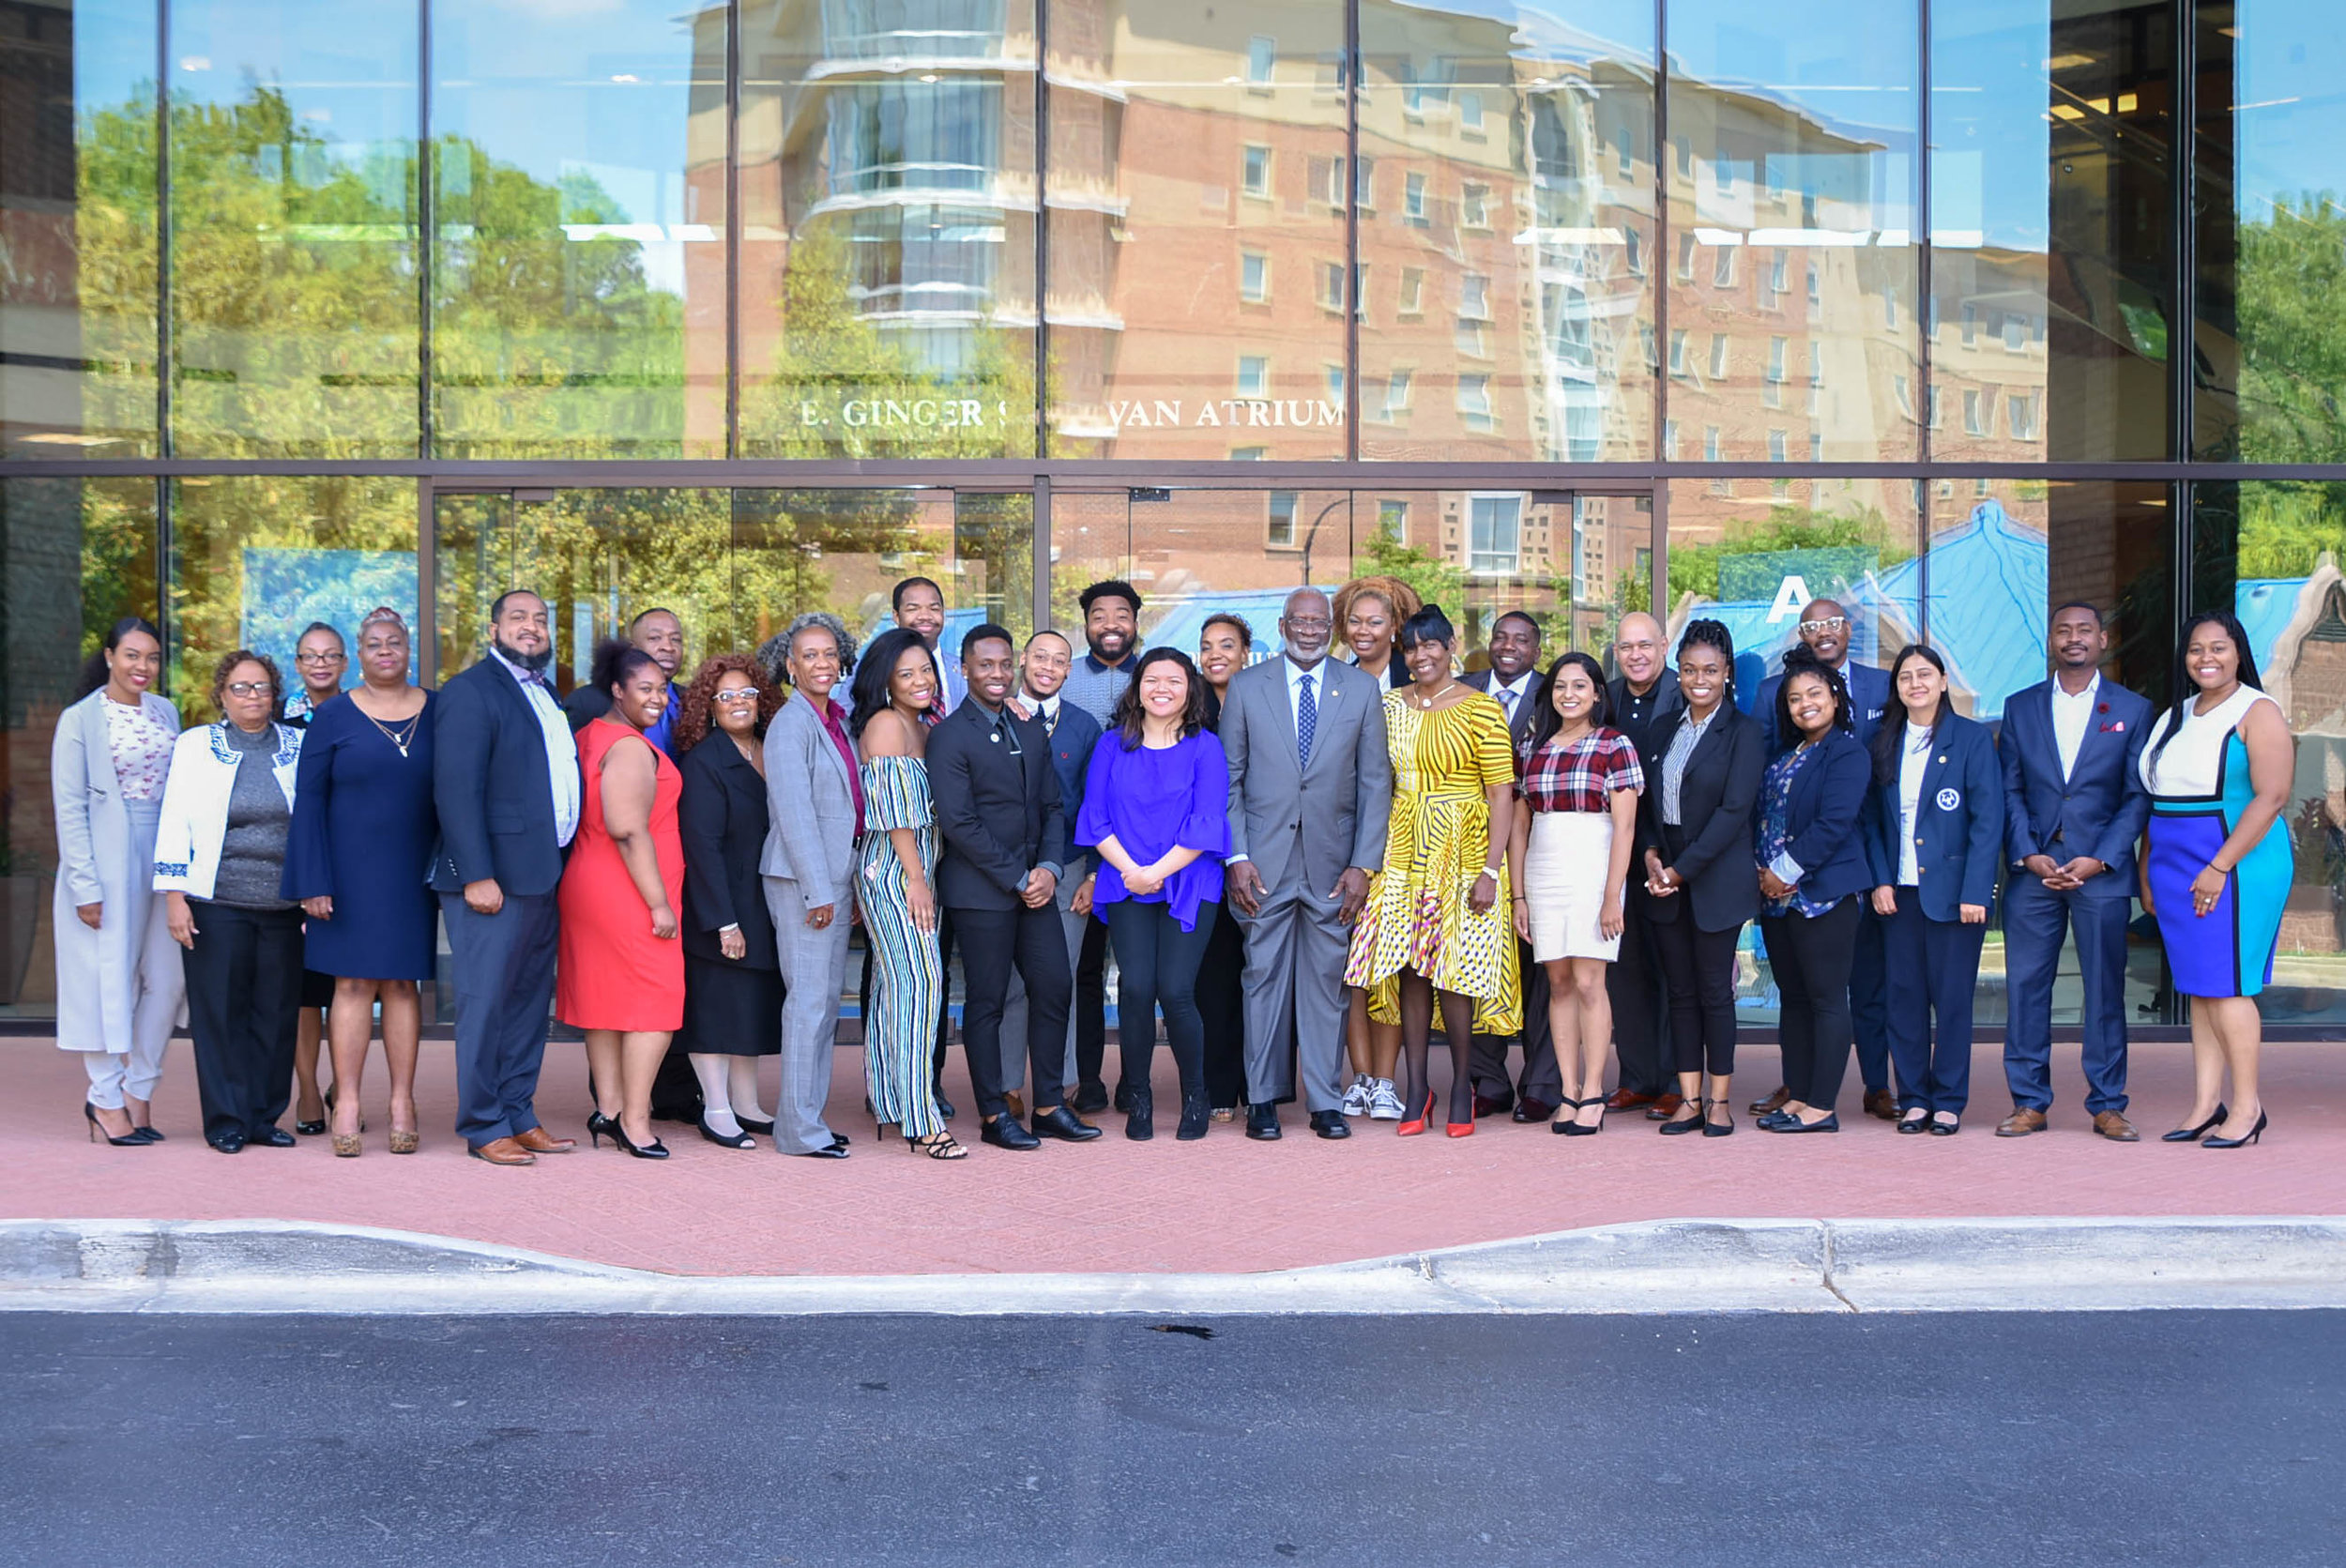 2018 CHLP Graduates with Dr. David Satcher